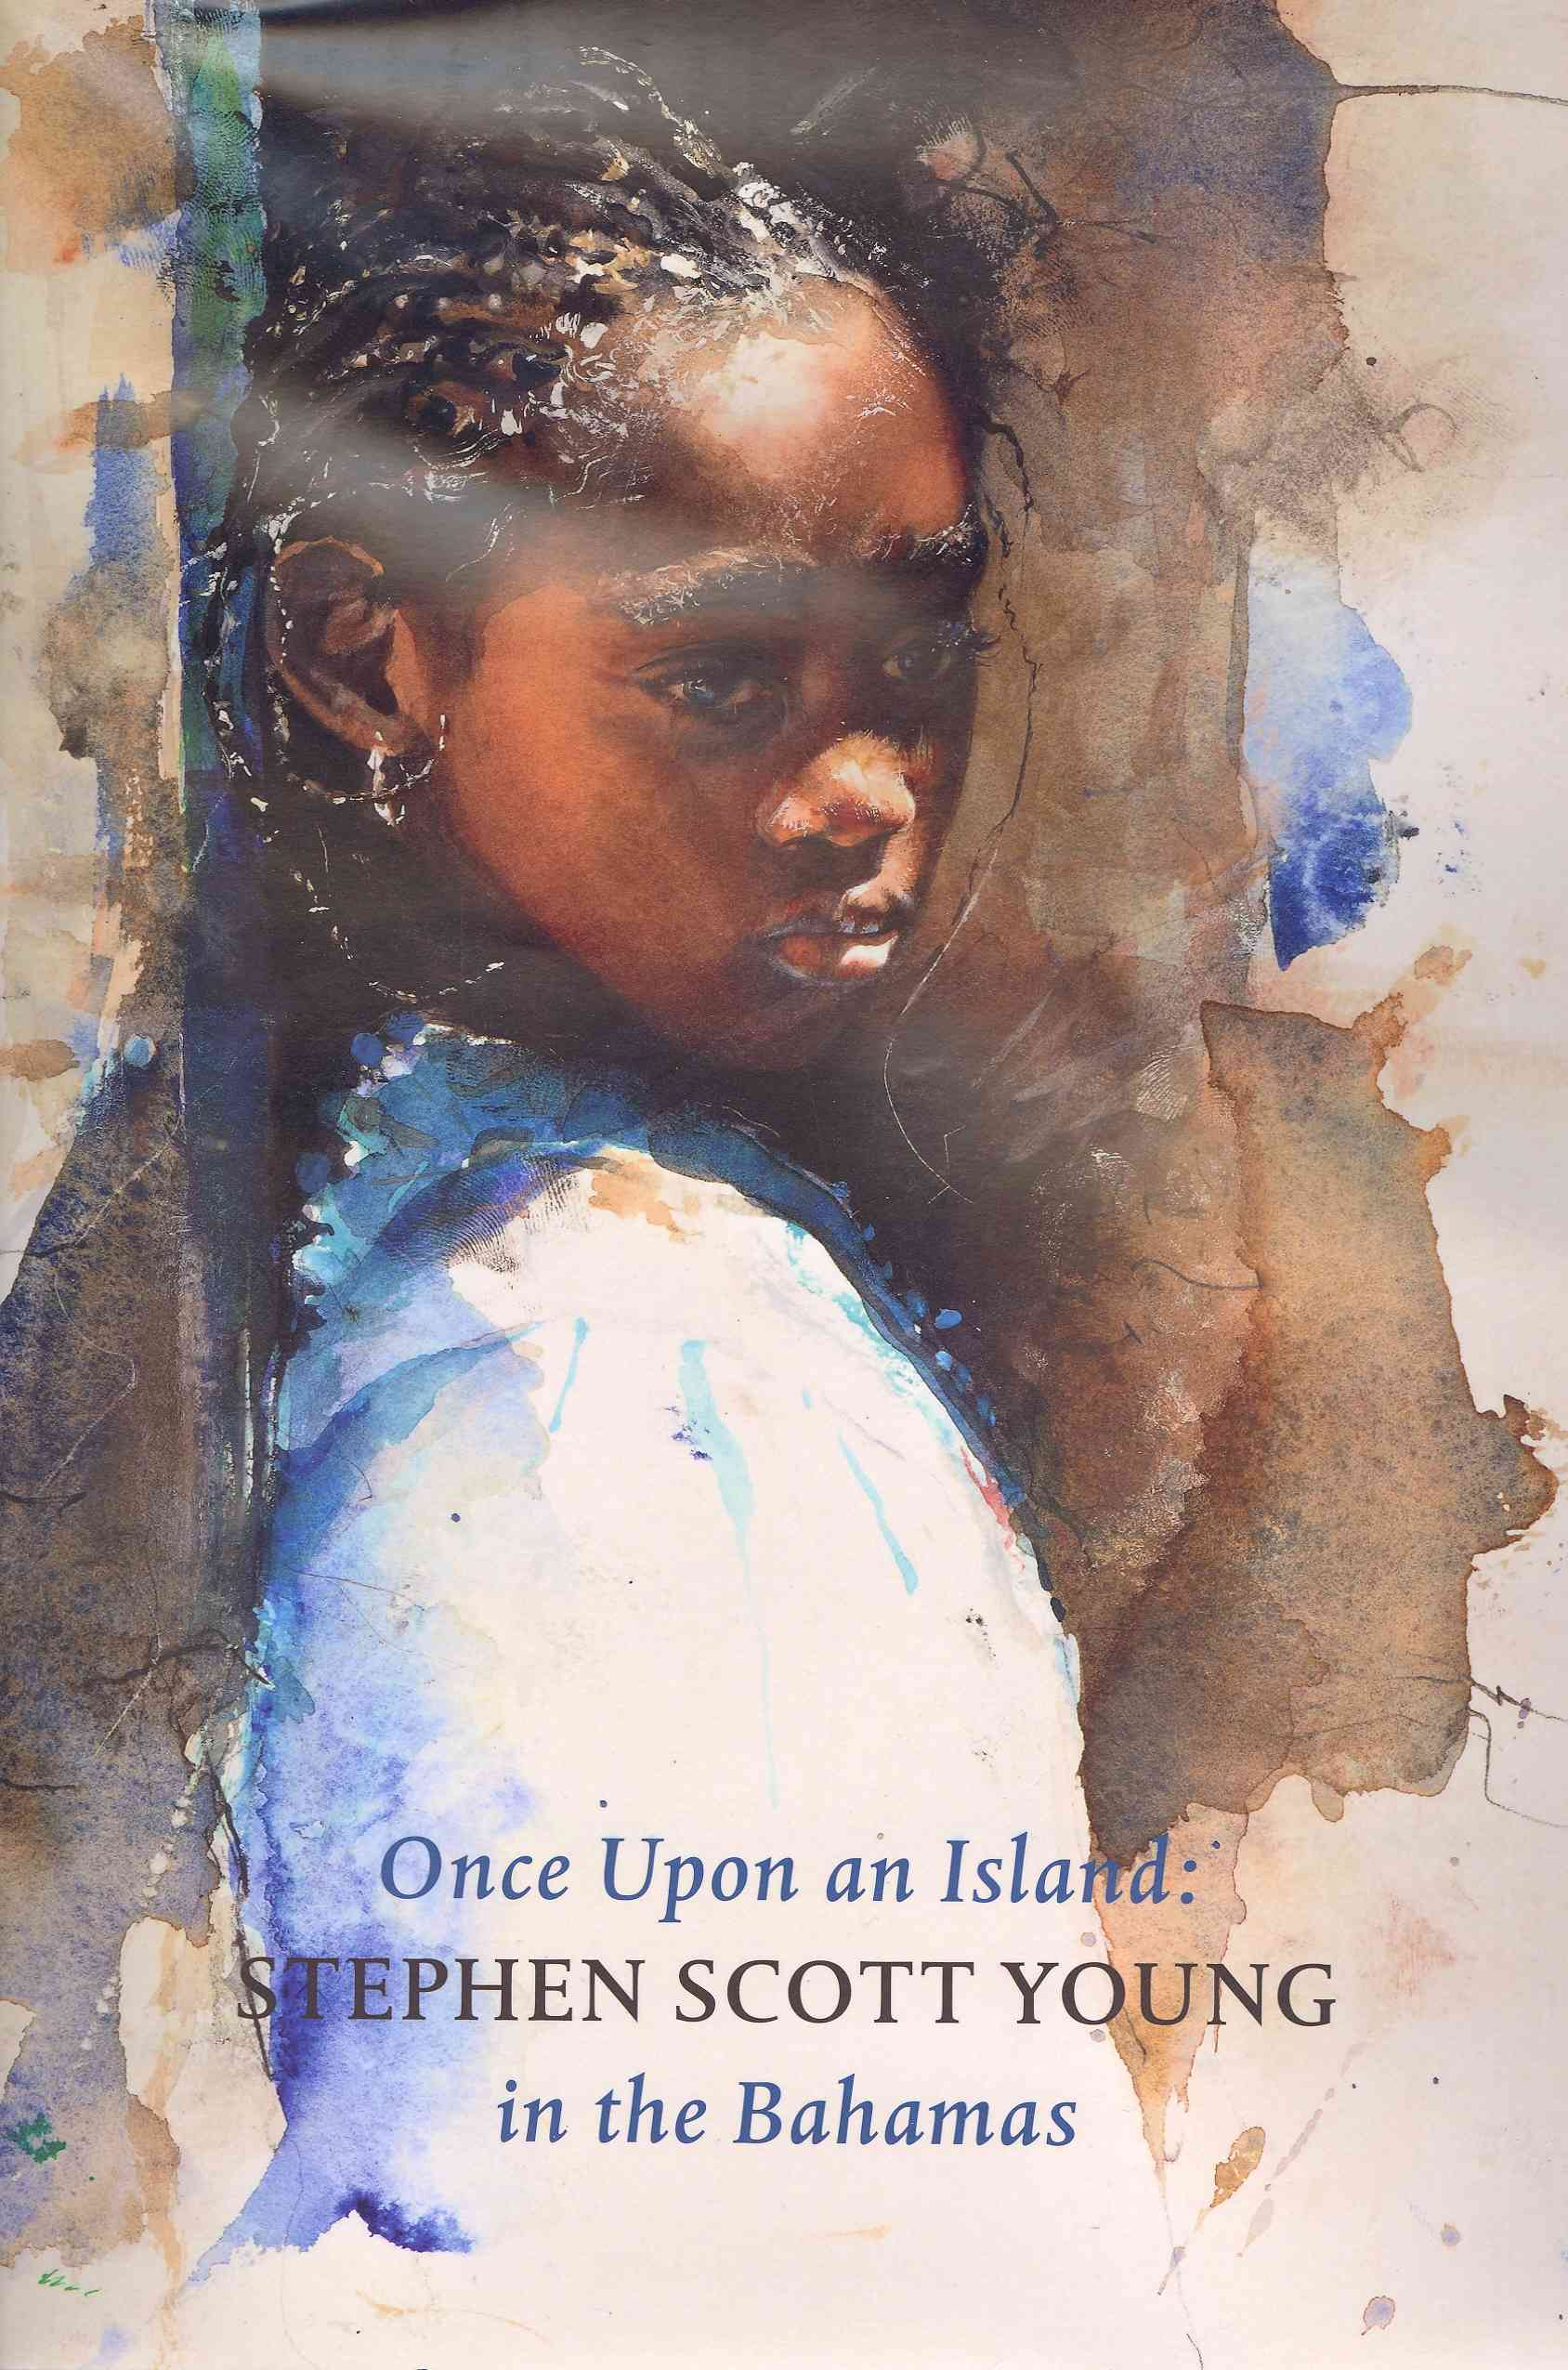 Once Upon an Island: Stephen Scott Young in the Bahamas (Hardcover)